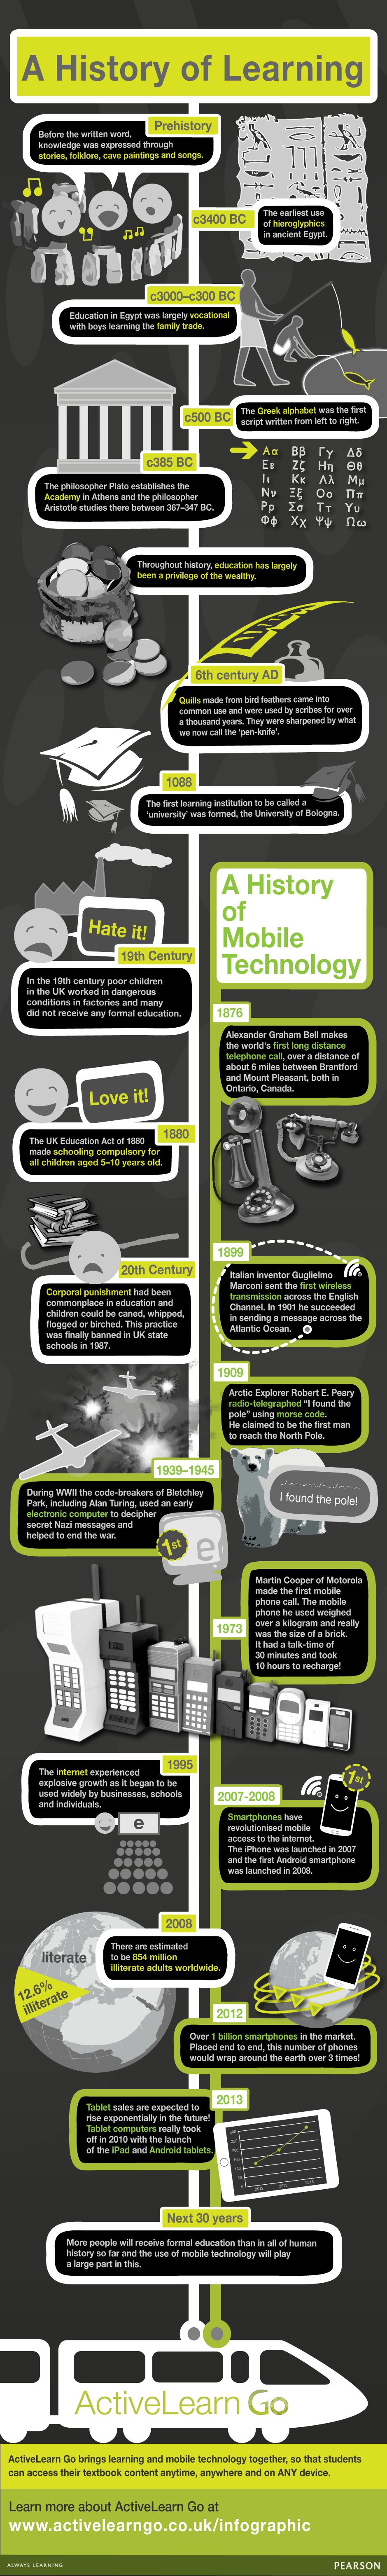 03 S416-ActiveLearn-Go-infographic-FINAL